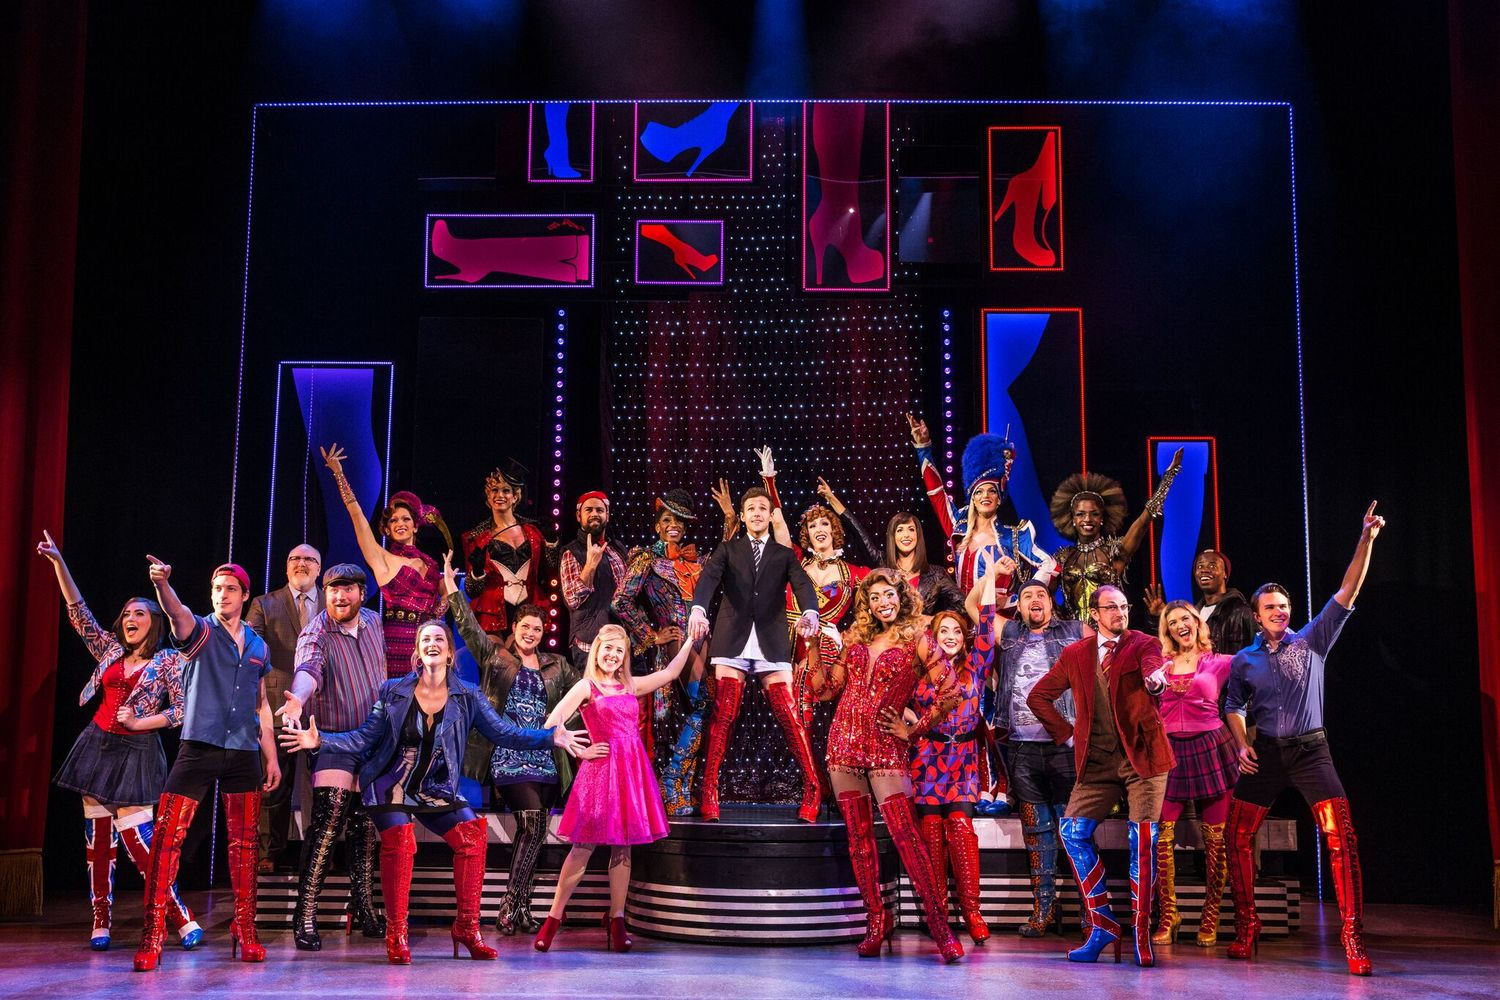 BWW Review: KINKY BOOTS Kicks Butt at Providence Performing Arts Center